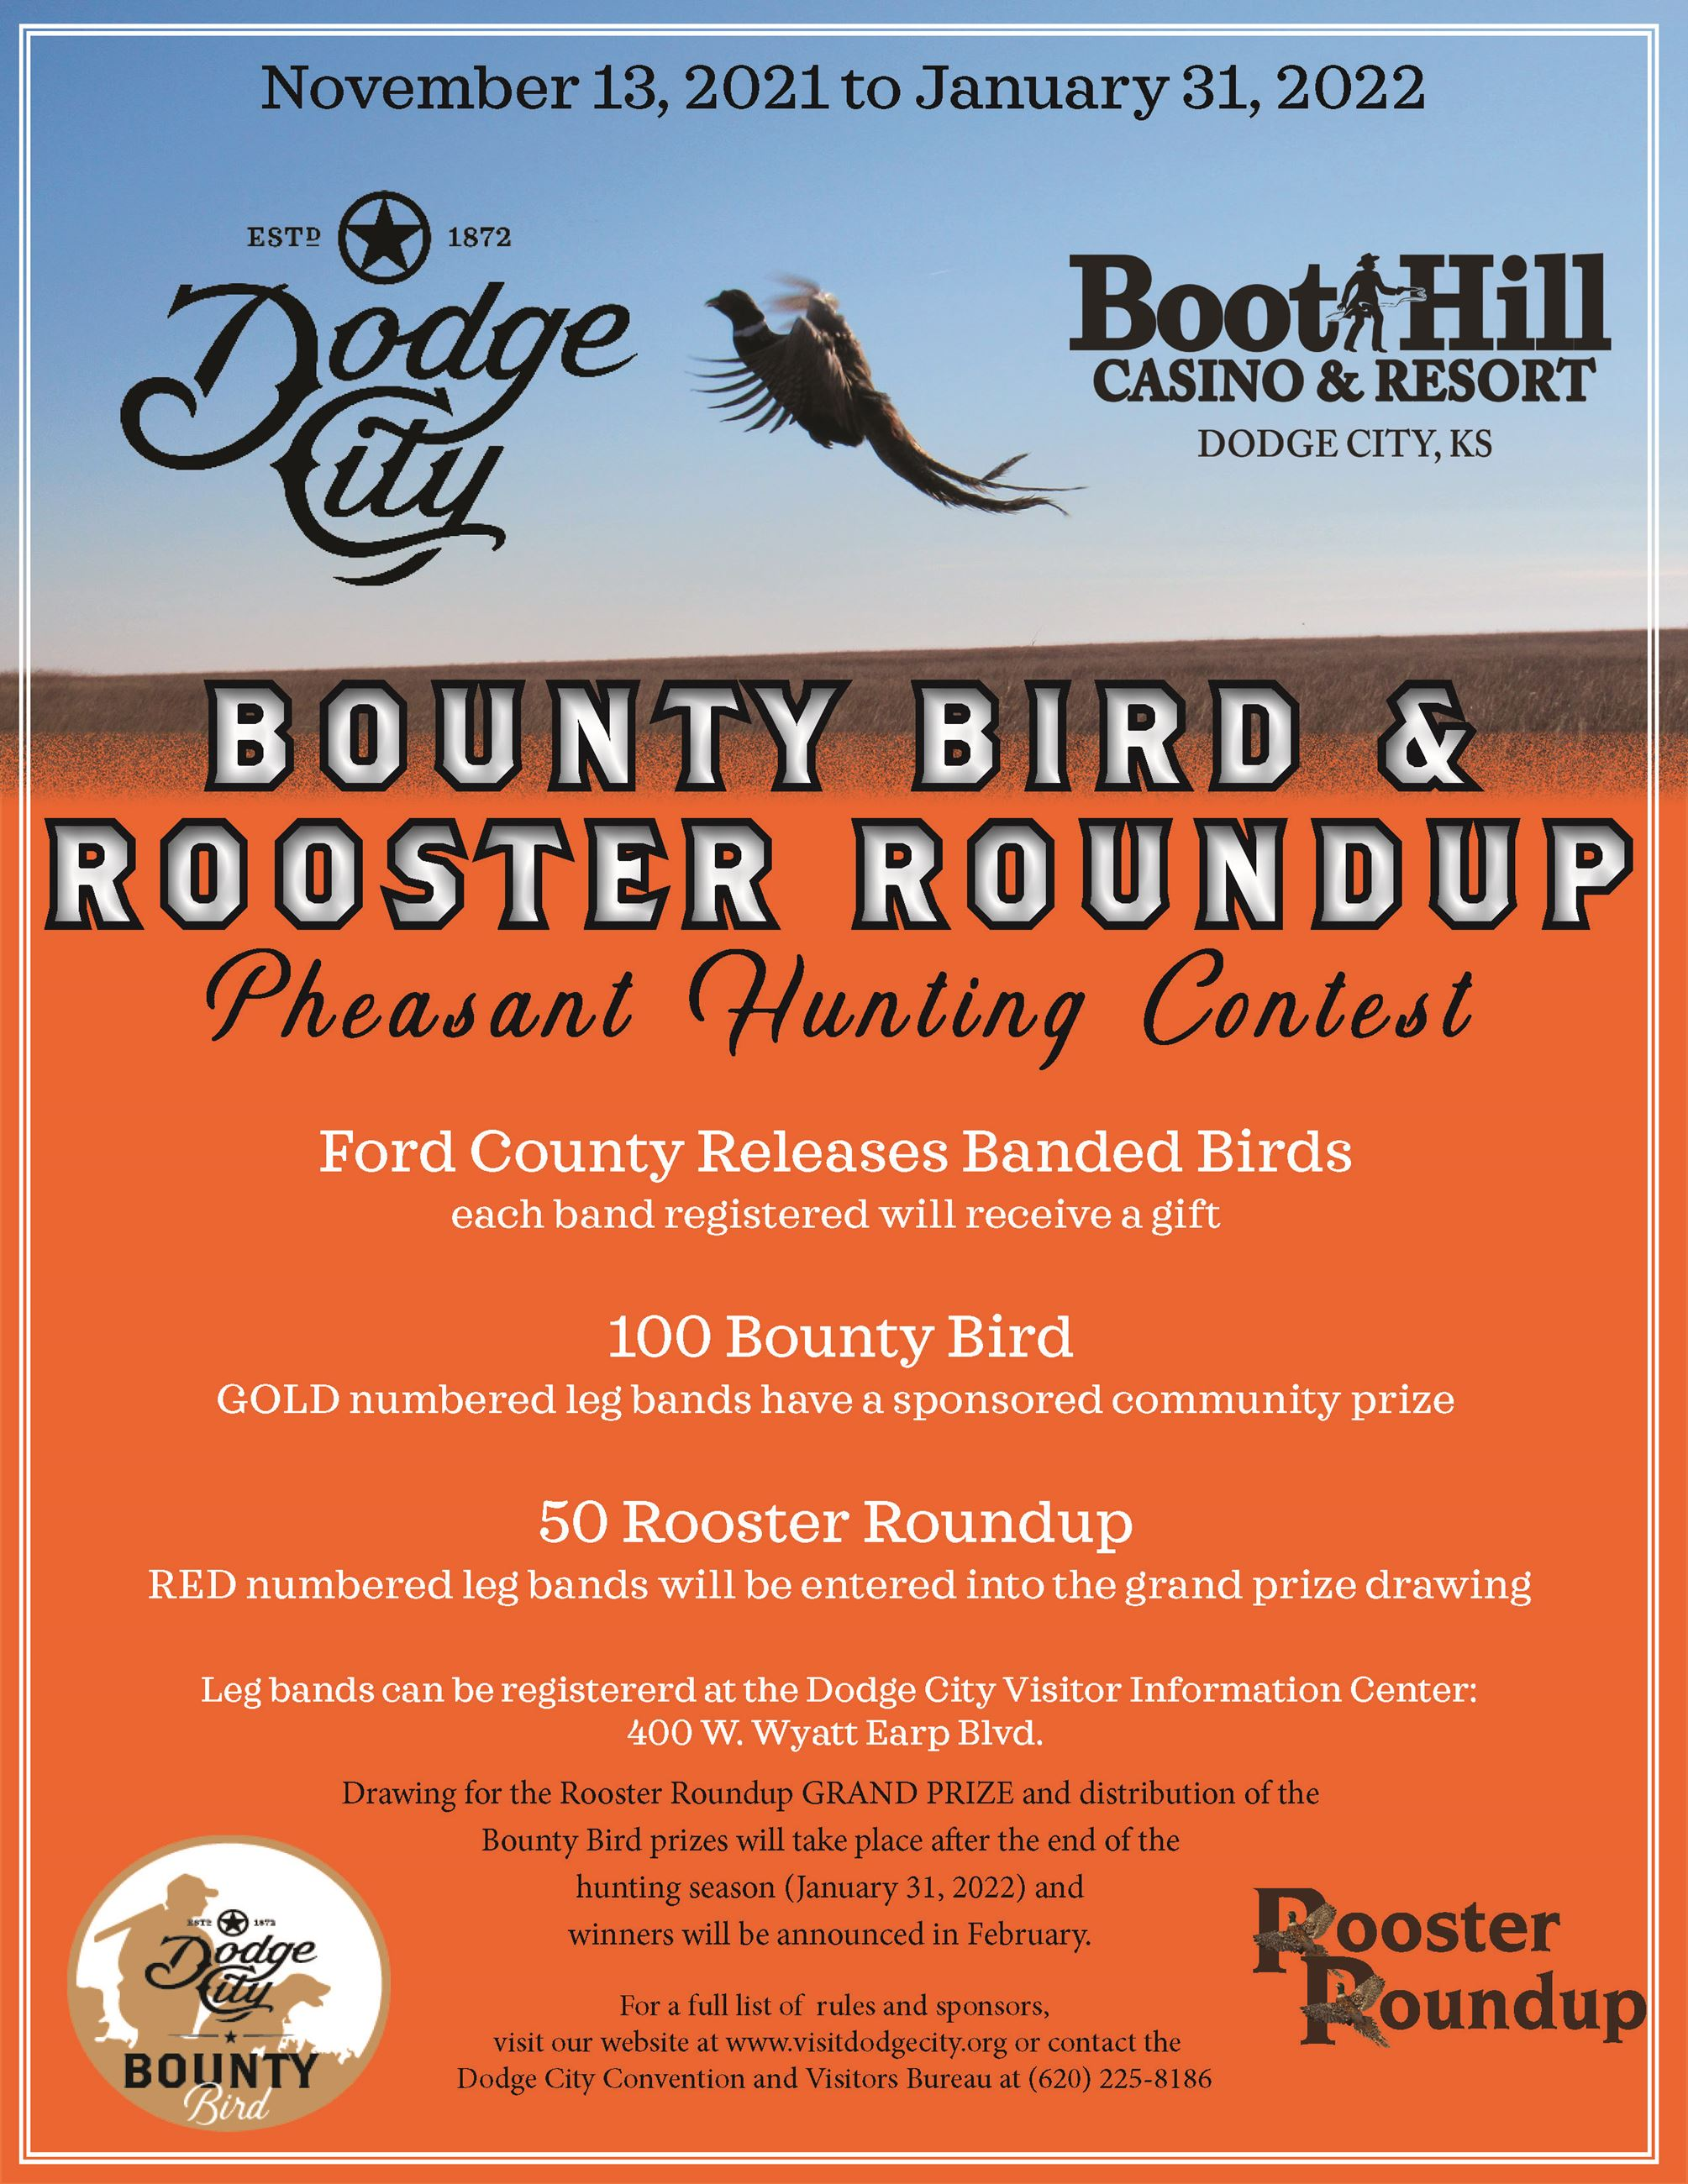 Ford County Pheasant Hunting Contest - Bounty Bird 2018